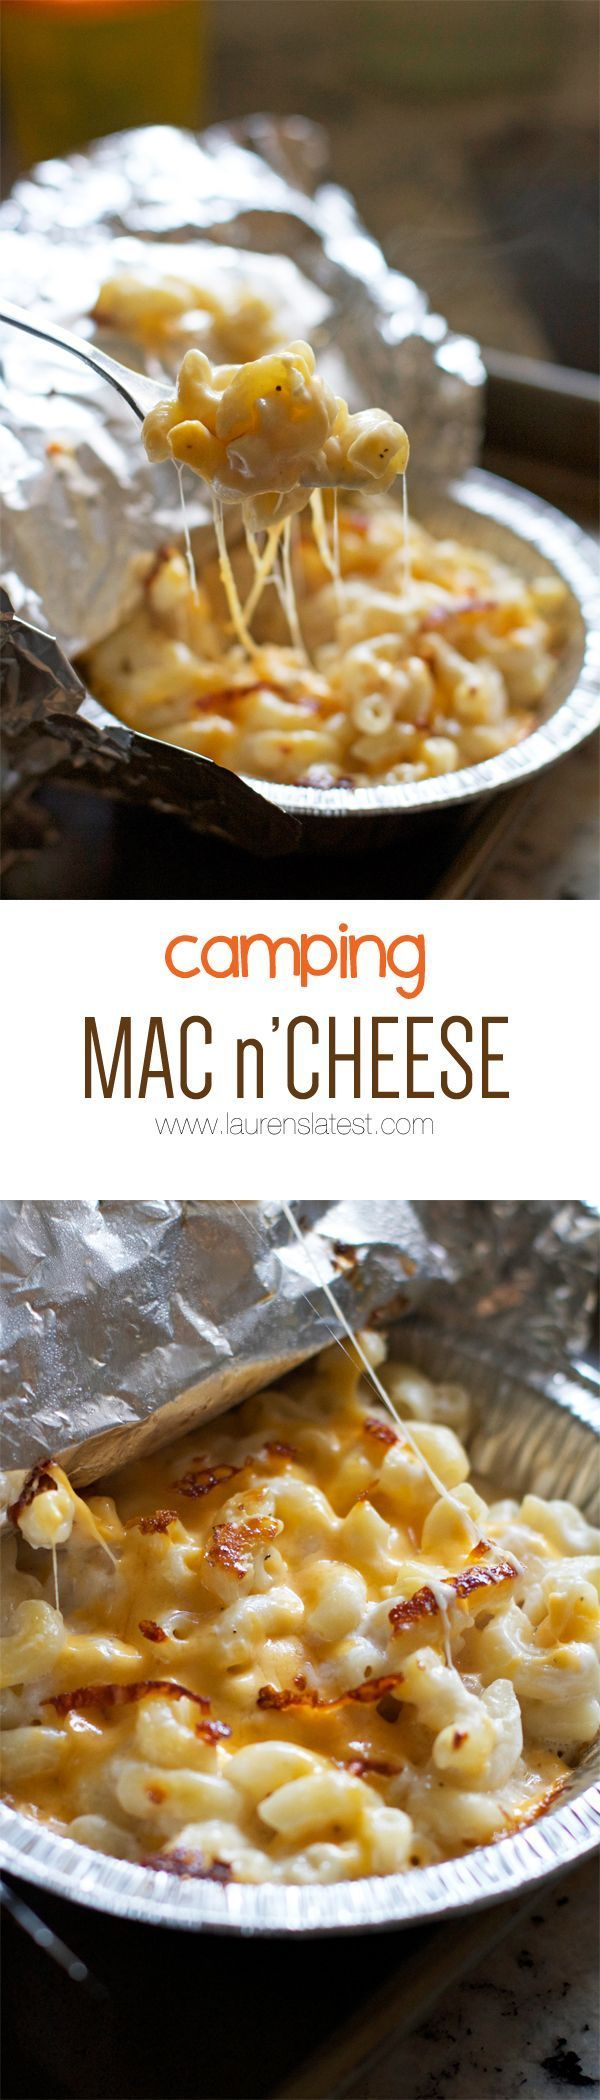 Camping Mac n'Cheese camping food, camping food ideas #camping #recipe